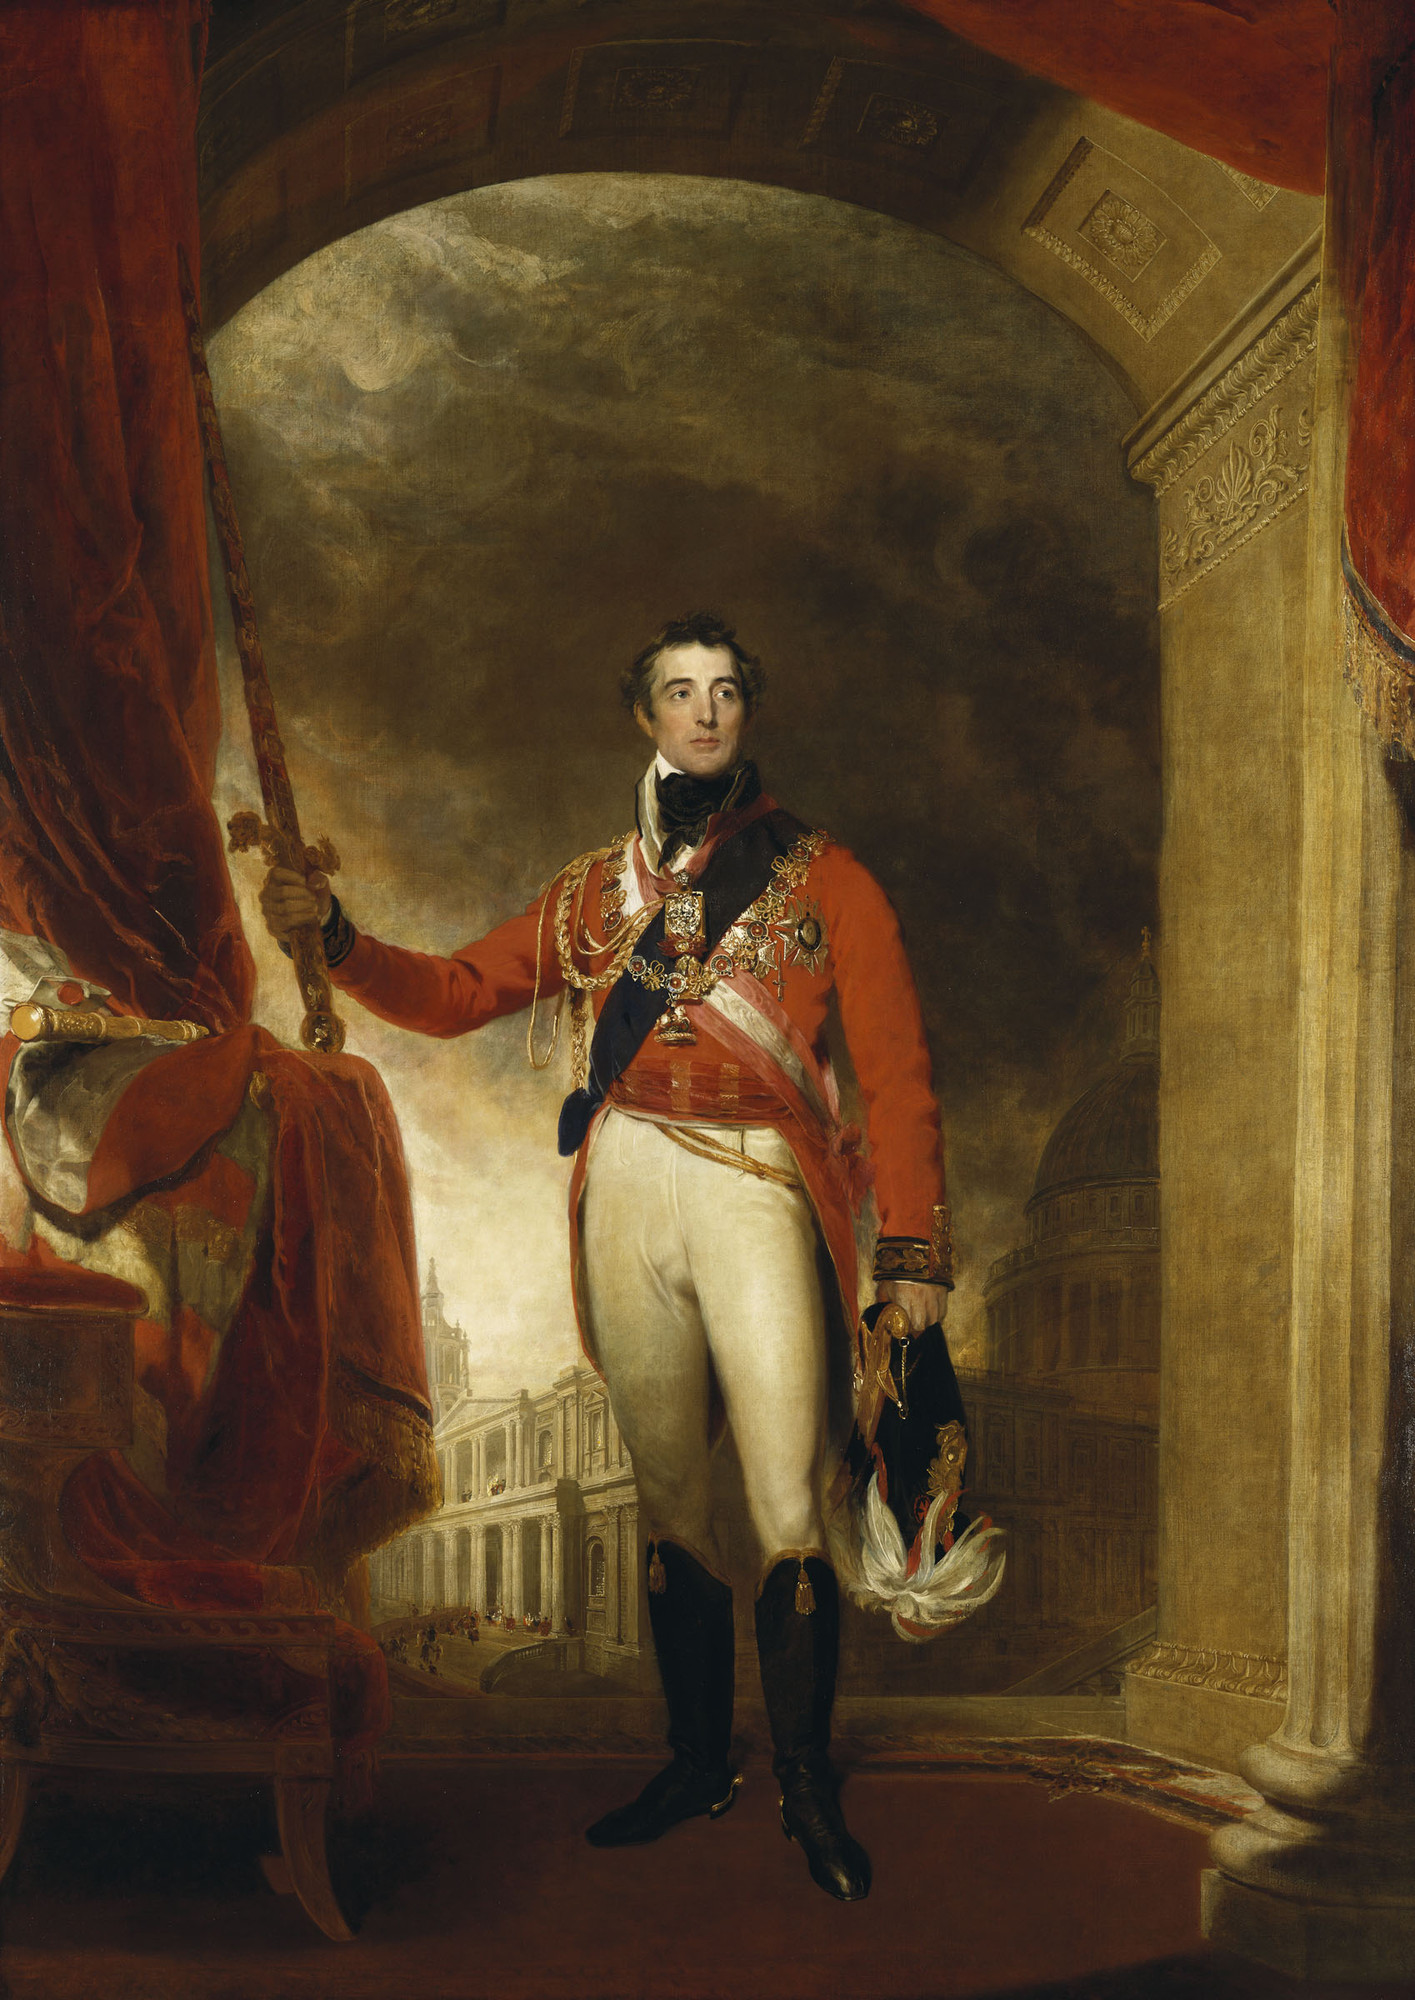 The Duke of Wellington by Lawrence, 1814-15